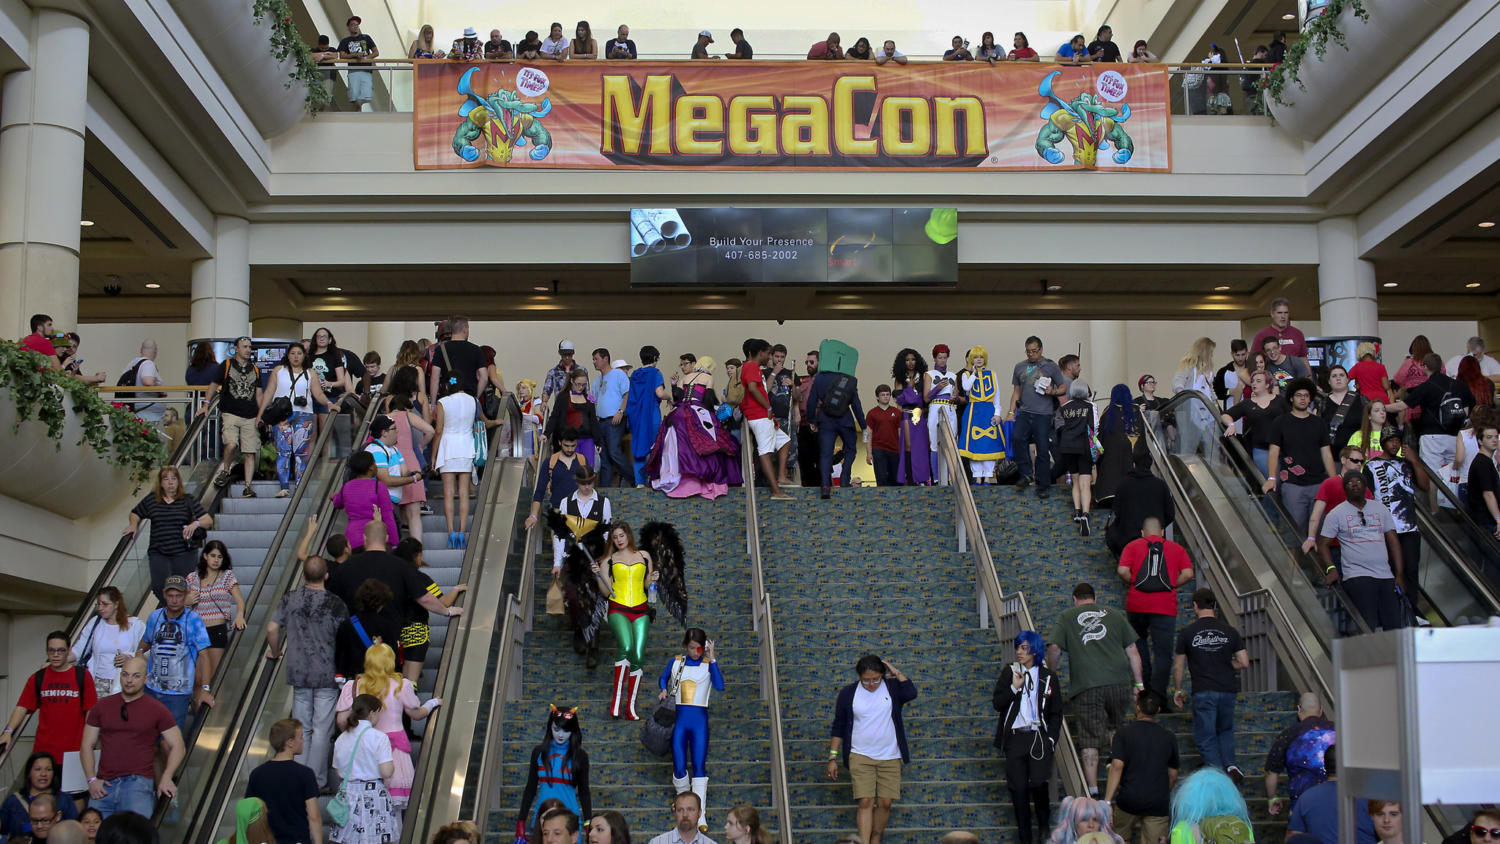 Megacon will be arriving to the Orange County Convention Center on May 25th and will end on May 28th.